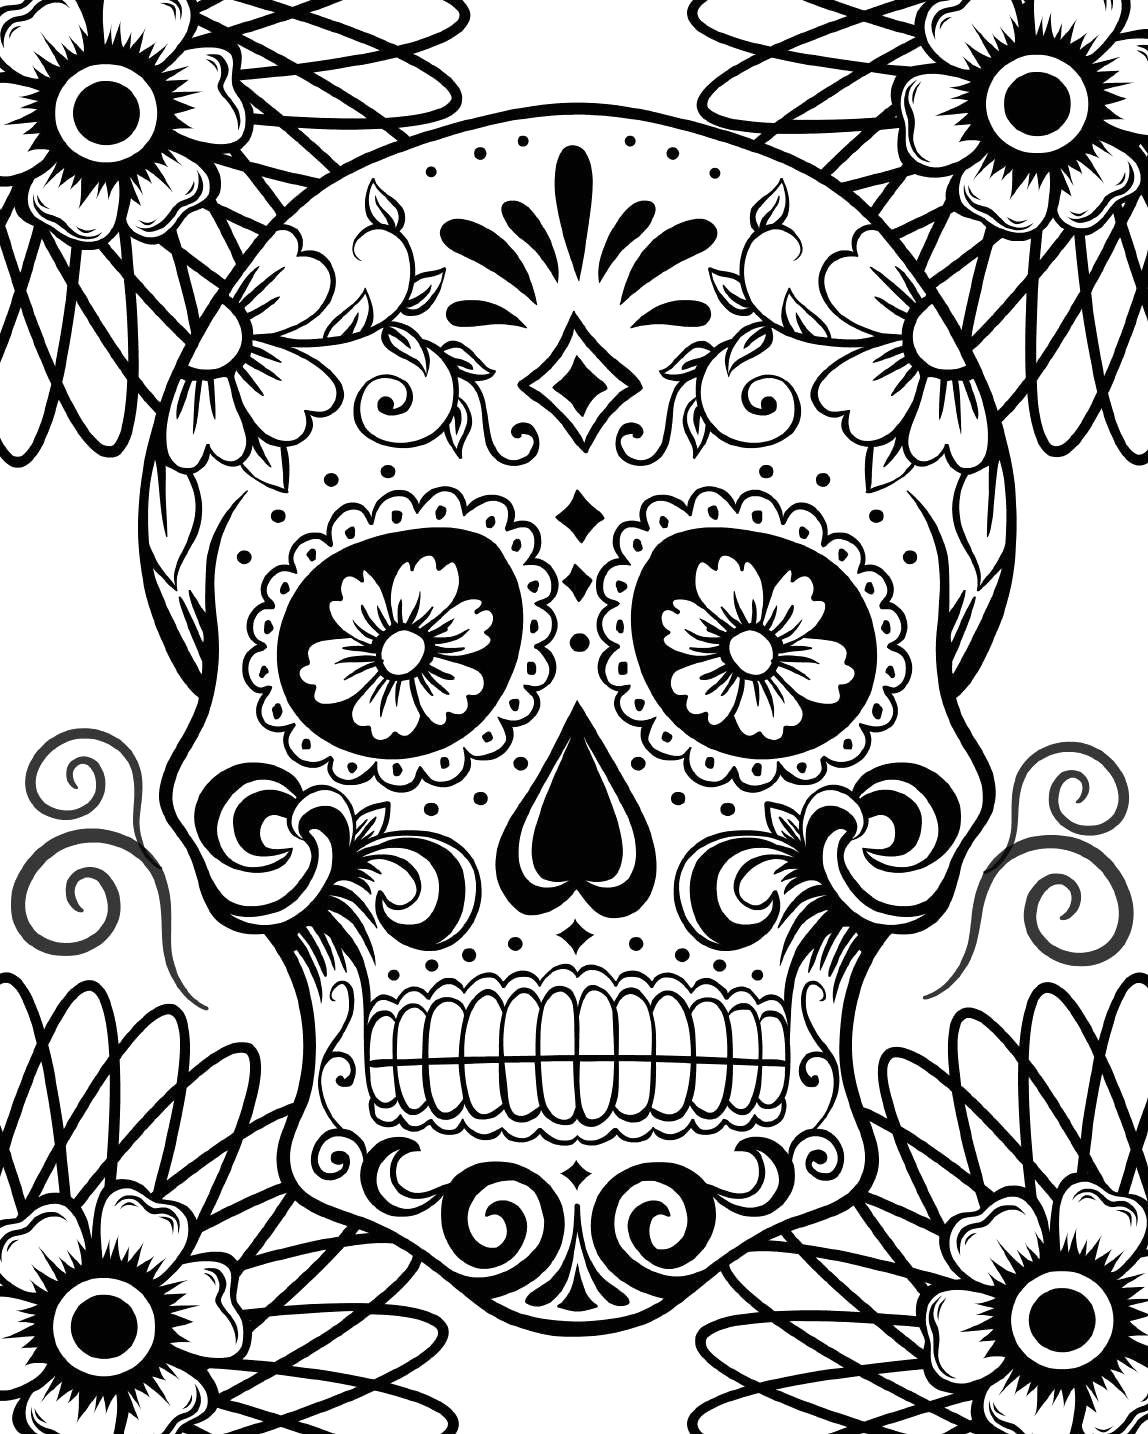 Day Of the Dead Skeletons Coloring Pages Free Printable Day Of the Dead Coloring Pages Best